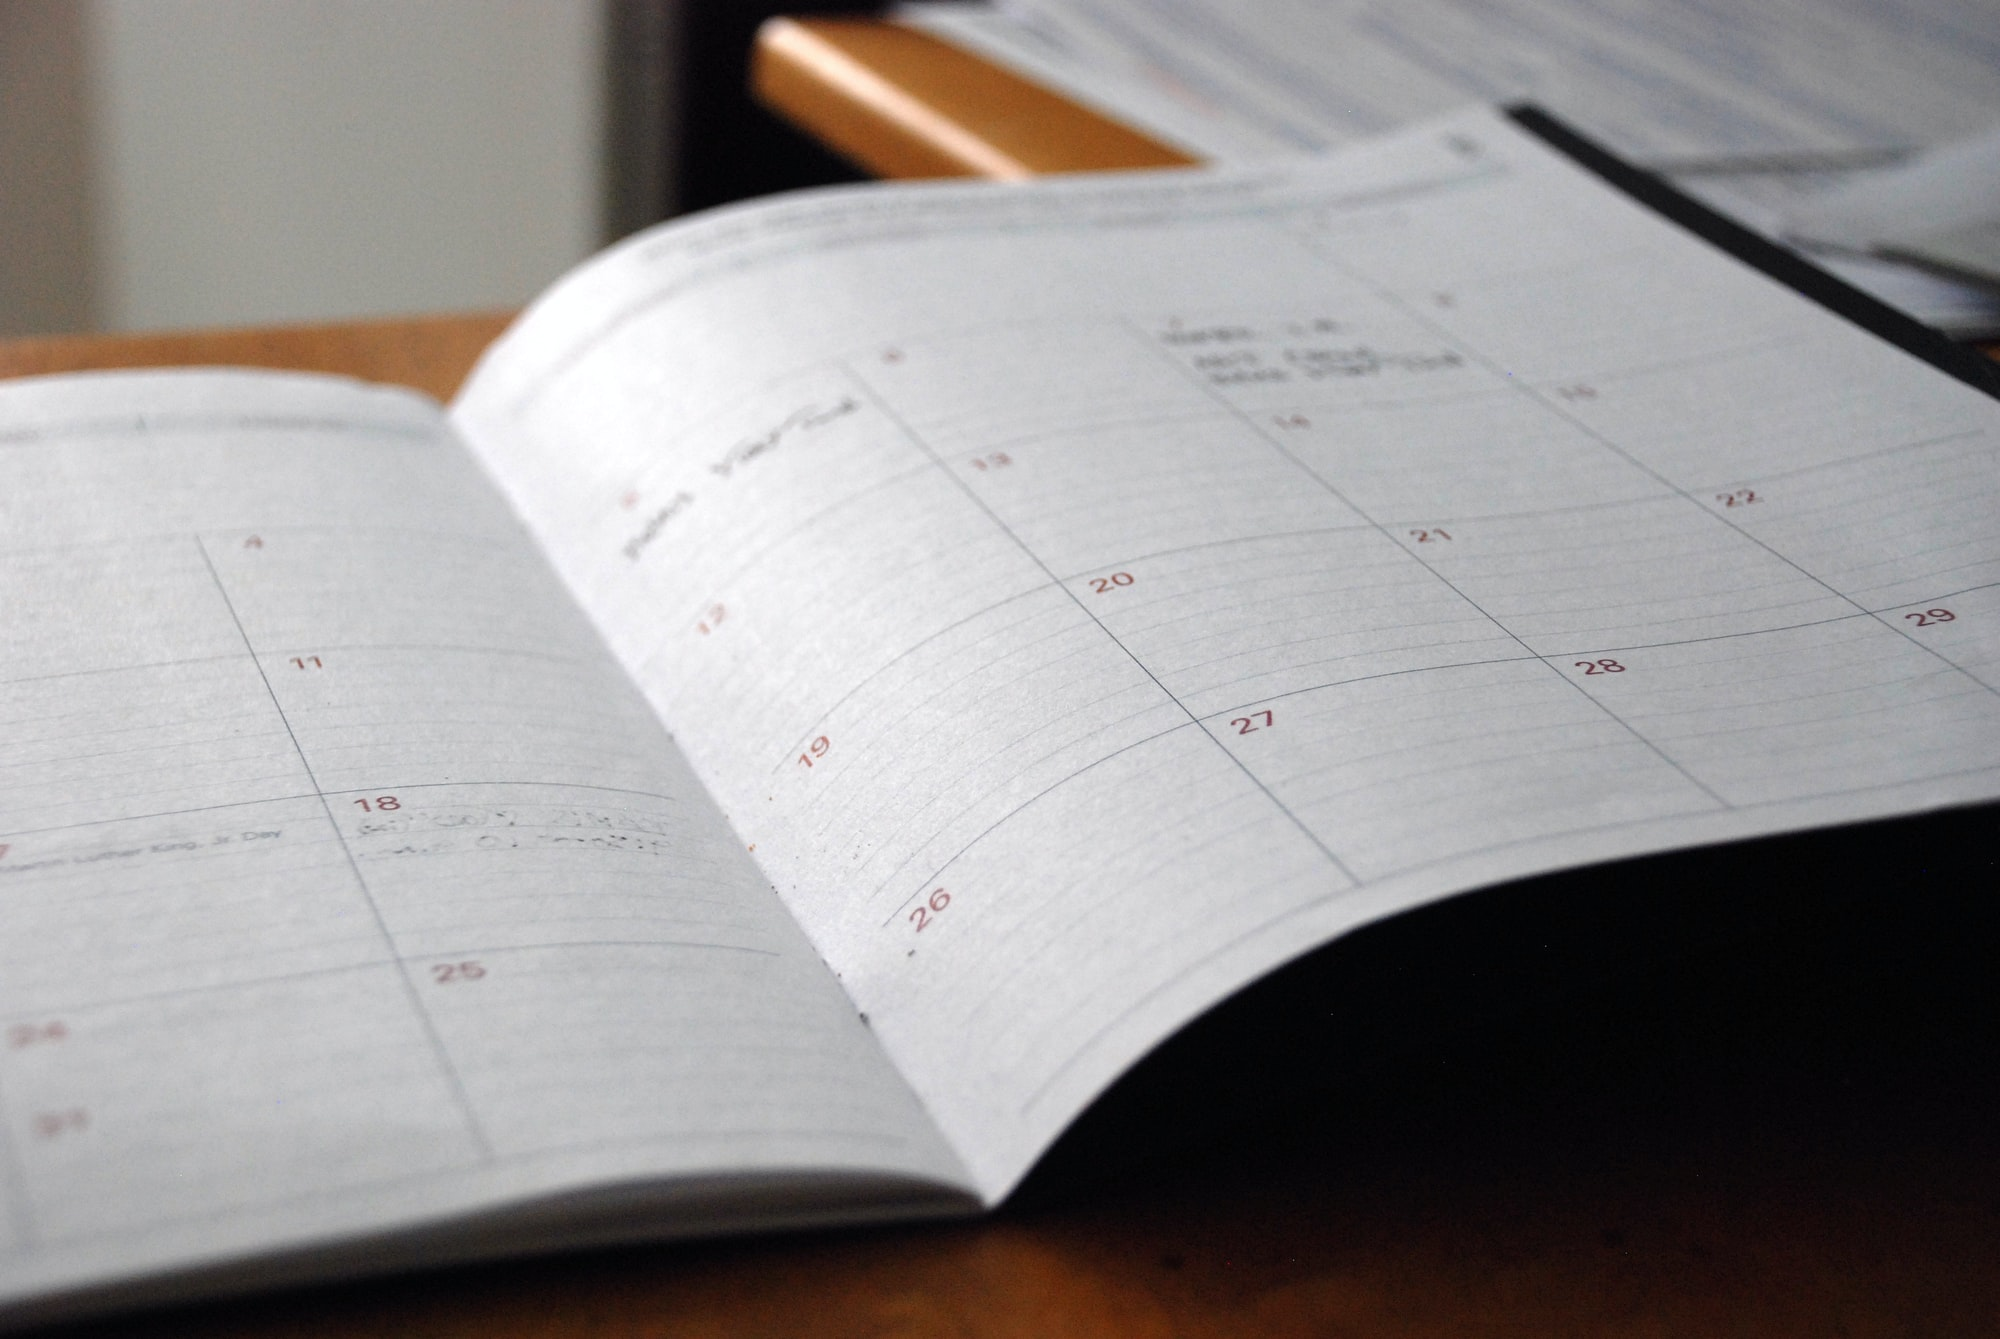 Monthly schedule on a planner